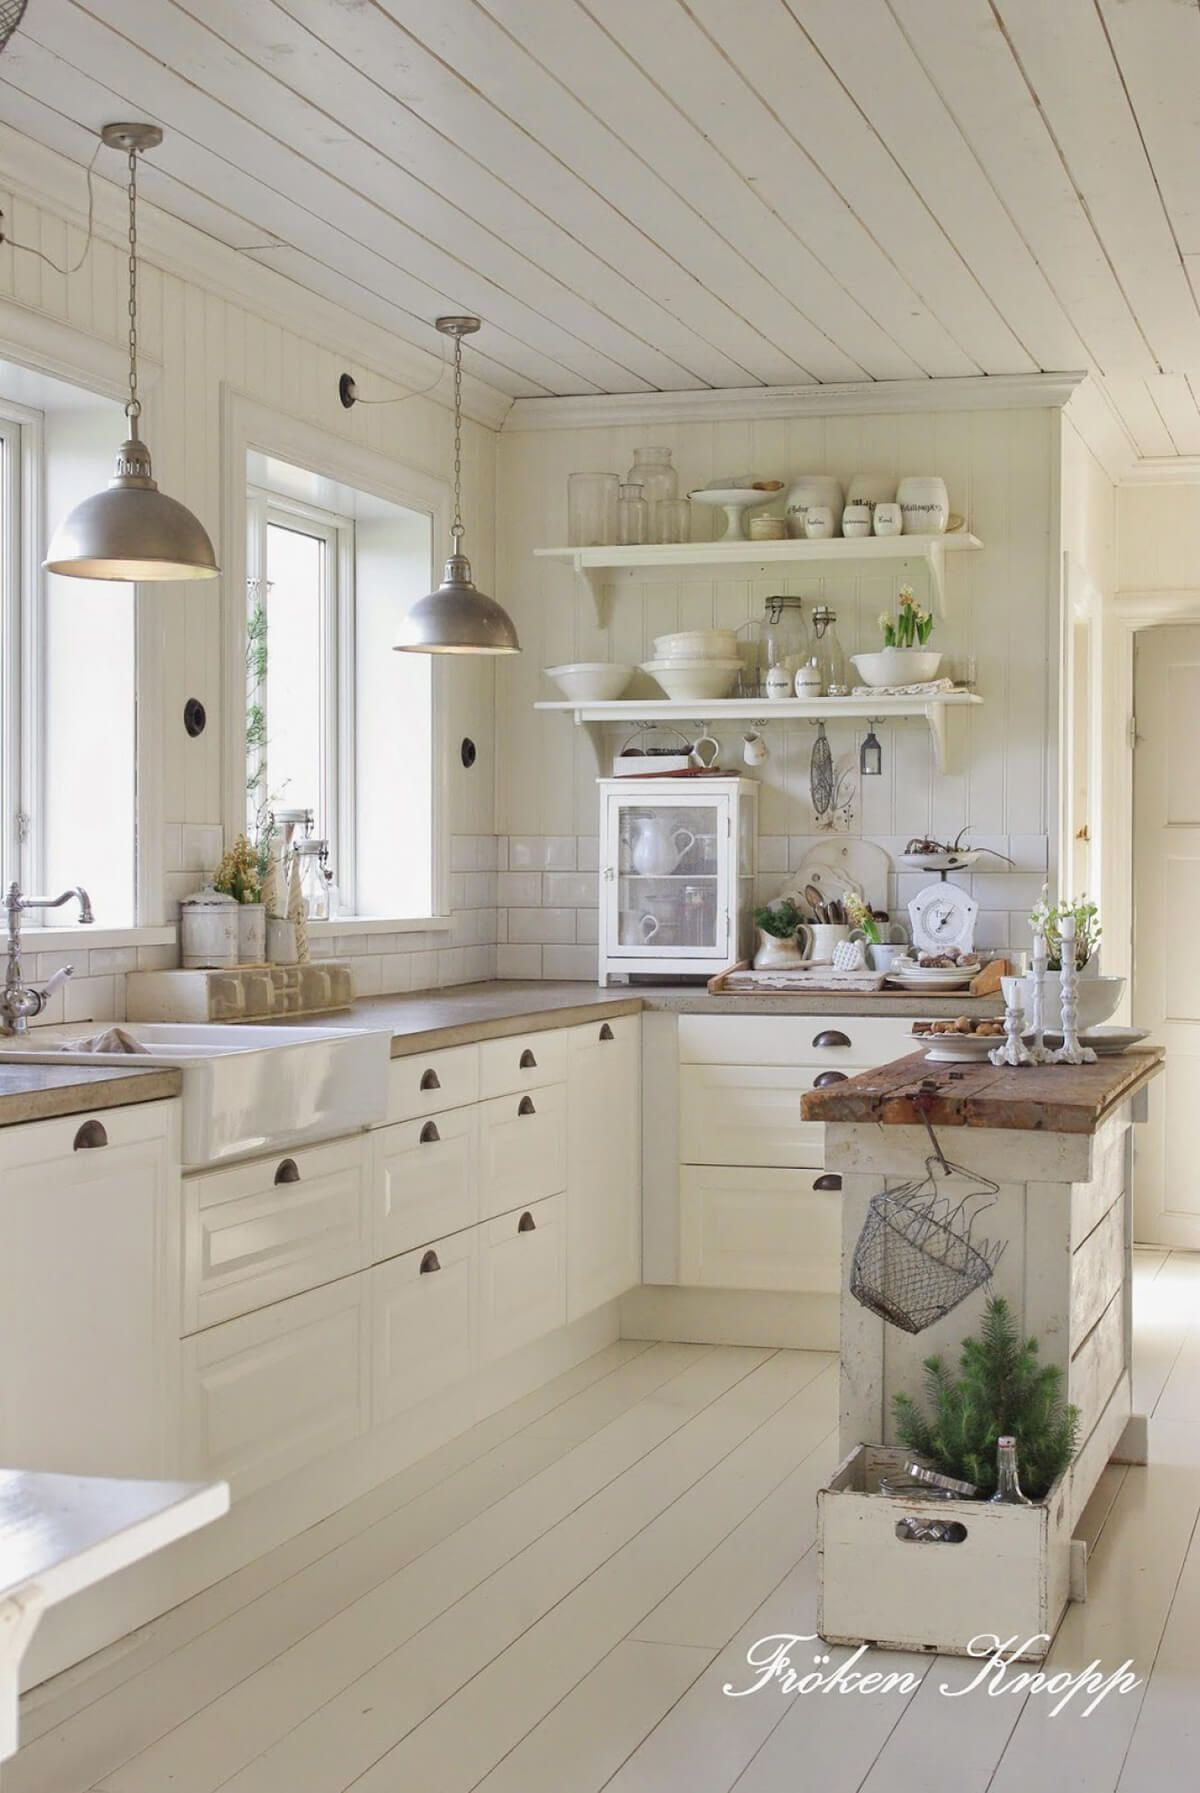 Attirant French Country Kitchen With Butcherblock Island